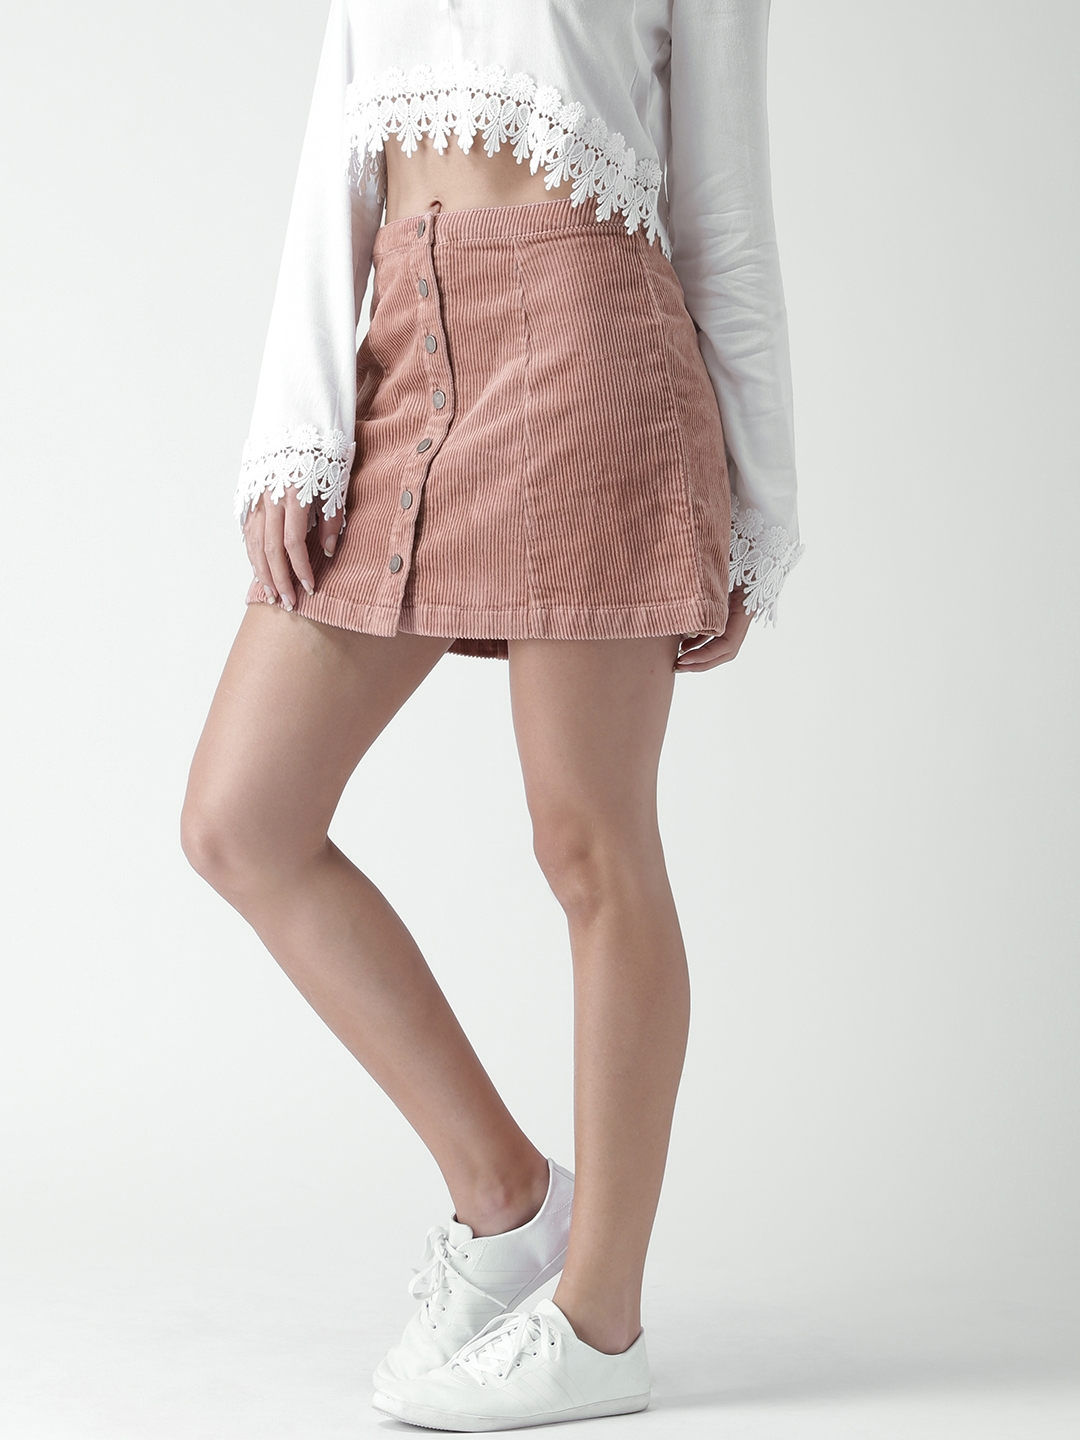 73e4501f7 Buy FOREVER 21 Dusty Pink Corduroy A Line Mini Skirt - Skirts for ...